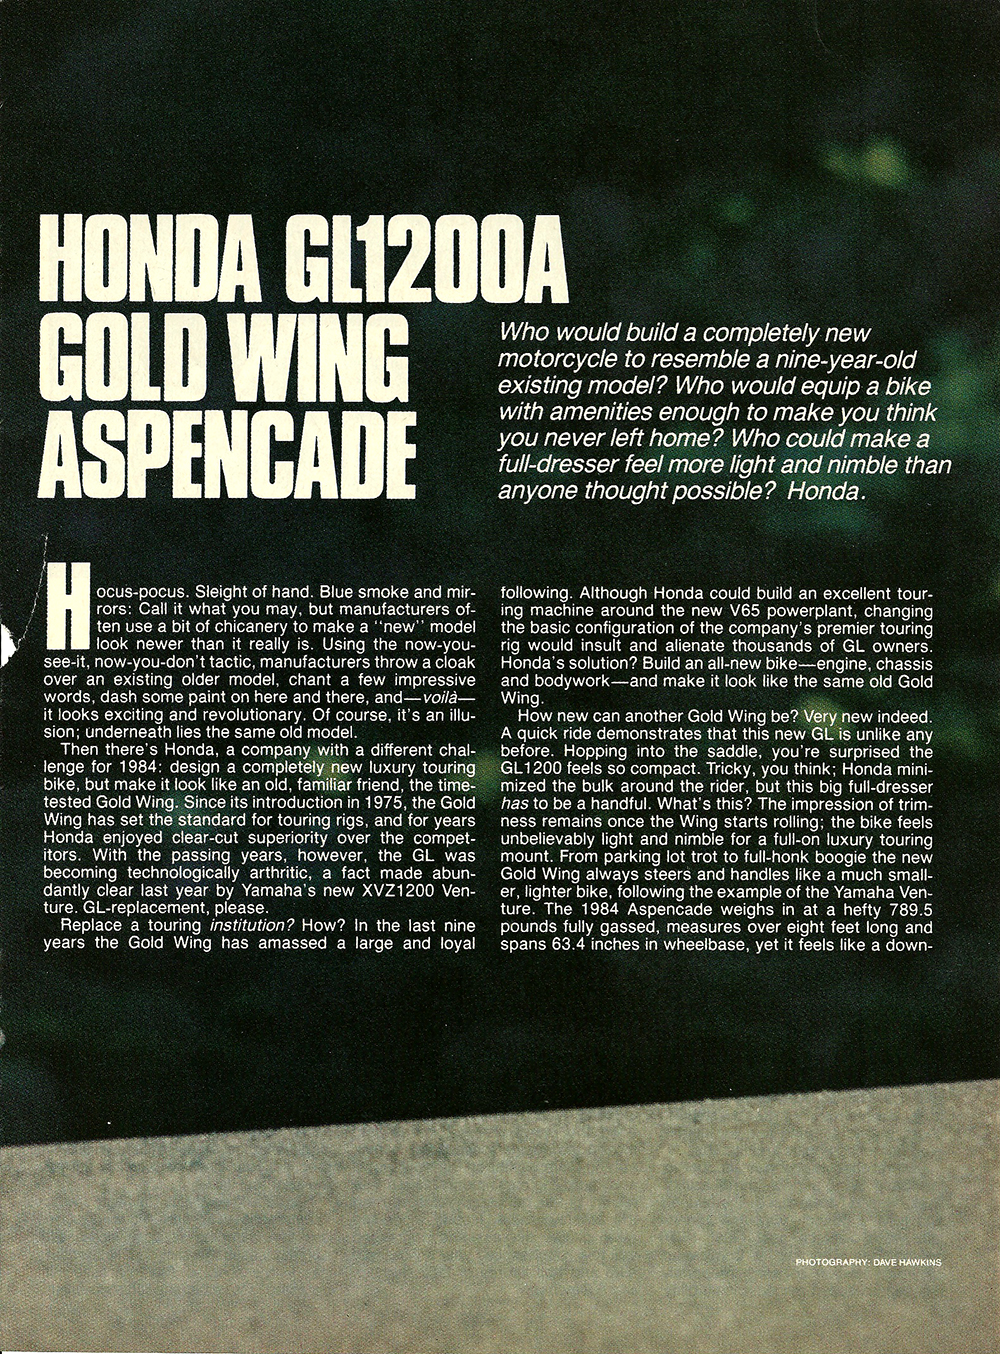 1984 Honda GL1200A Gold Wing Aspencade road test 2.jpg